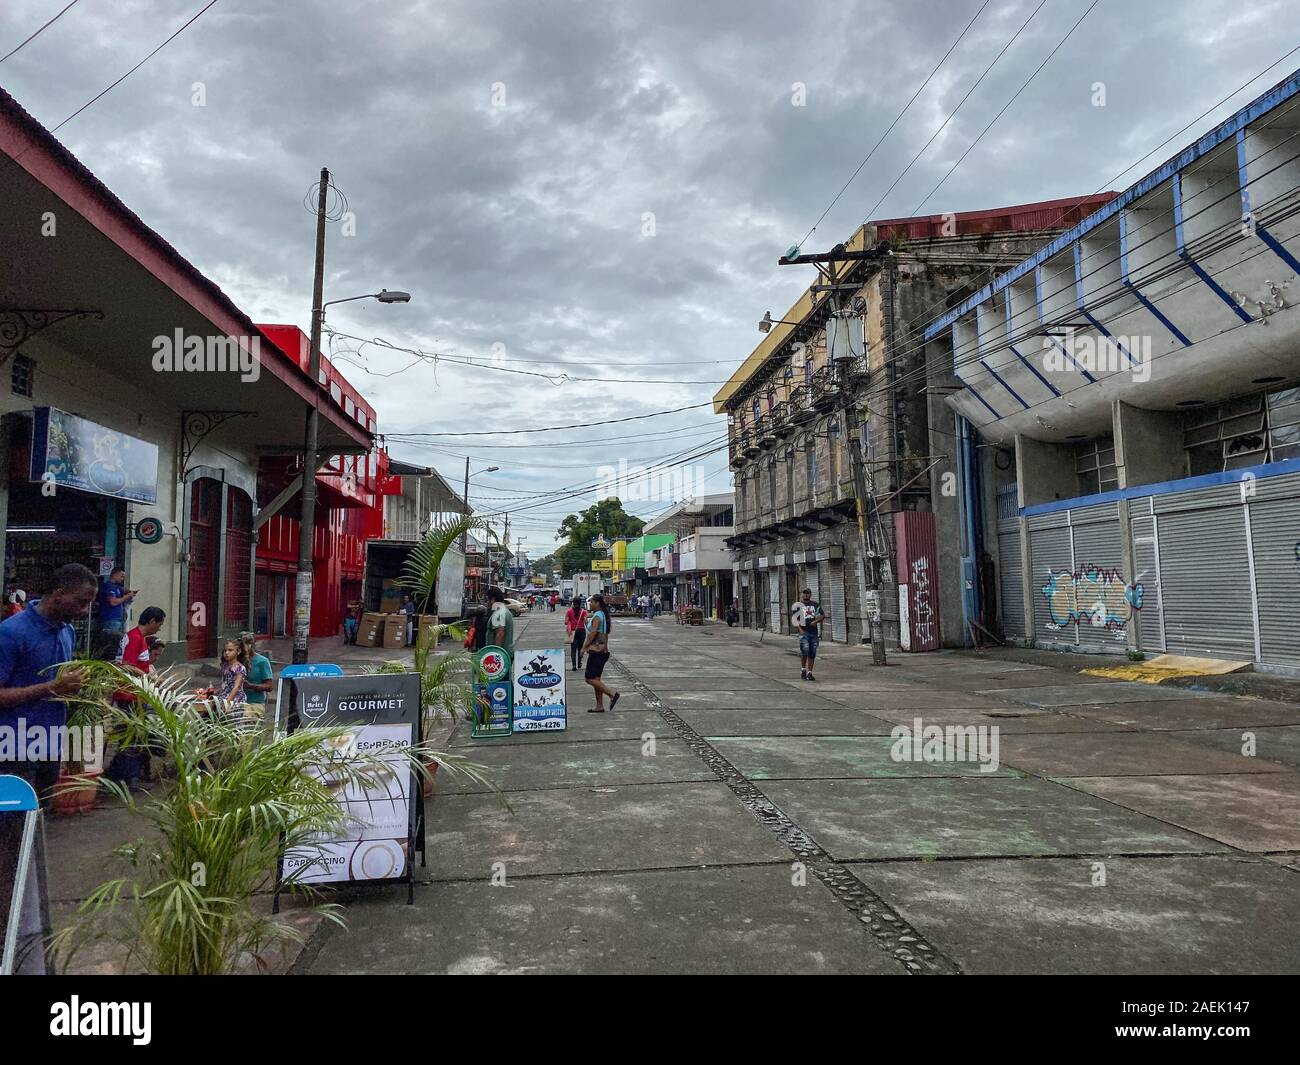 Puerto Limon Costa Rica 11 7 19 A Typical Street In The Cruise Ship Port Of Puerto Limon Costa Rica Stock Photo Alamy